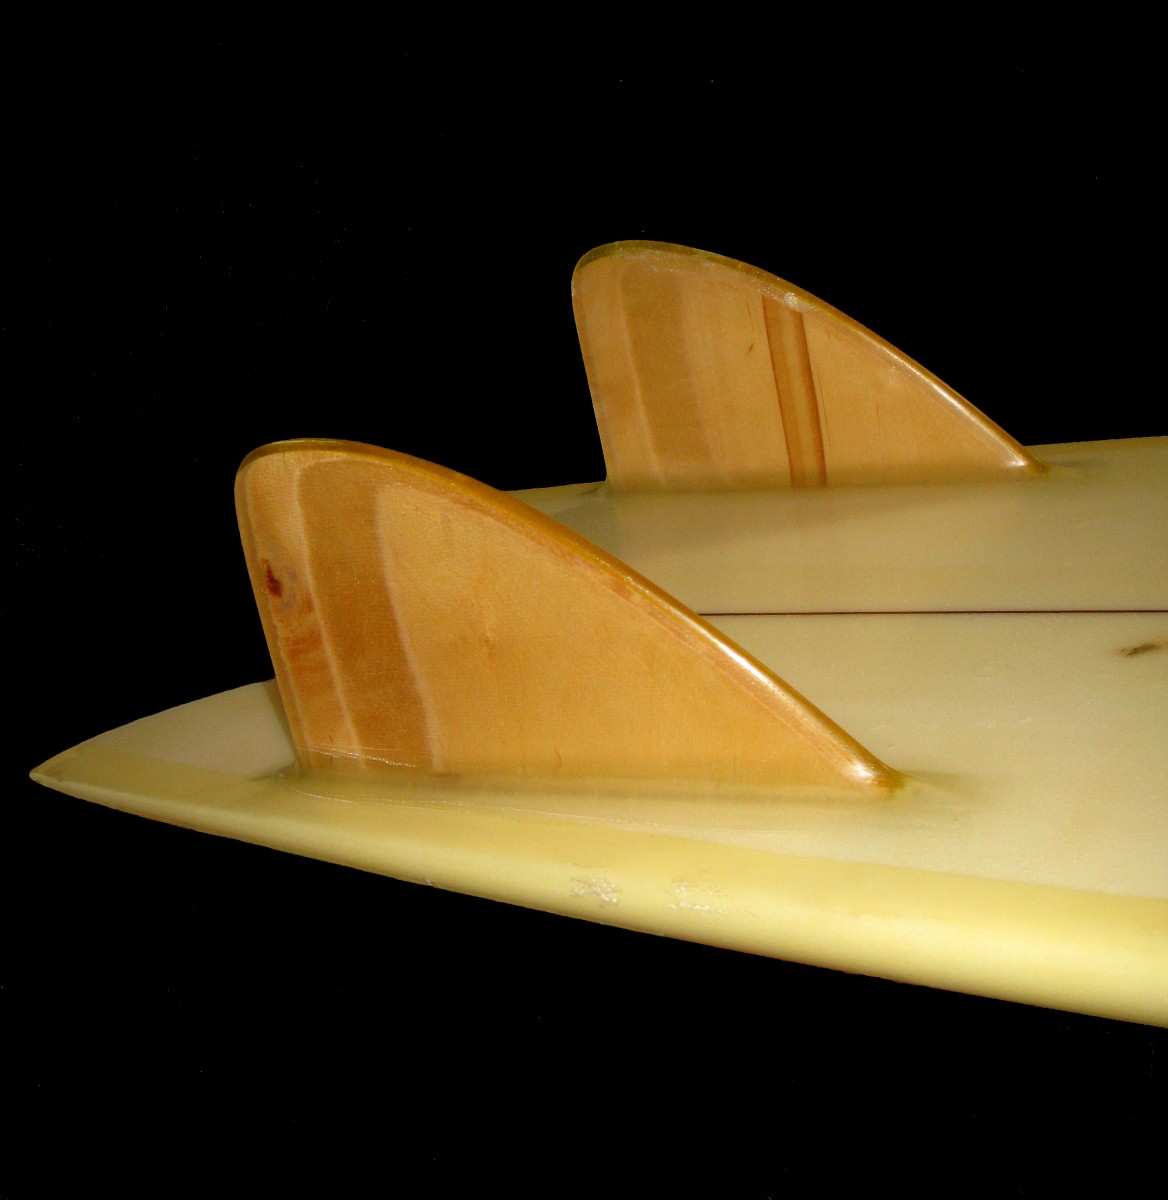 History of hydrodynamics is surfing_ Retro Twin Fin Surfboards